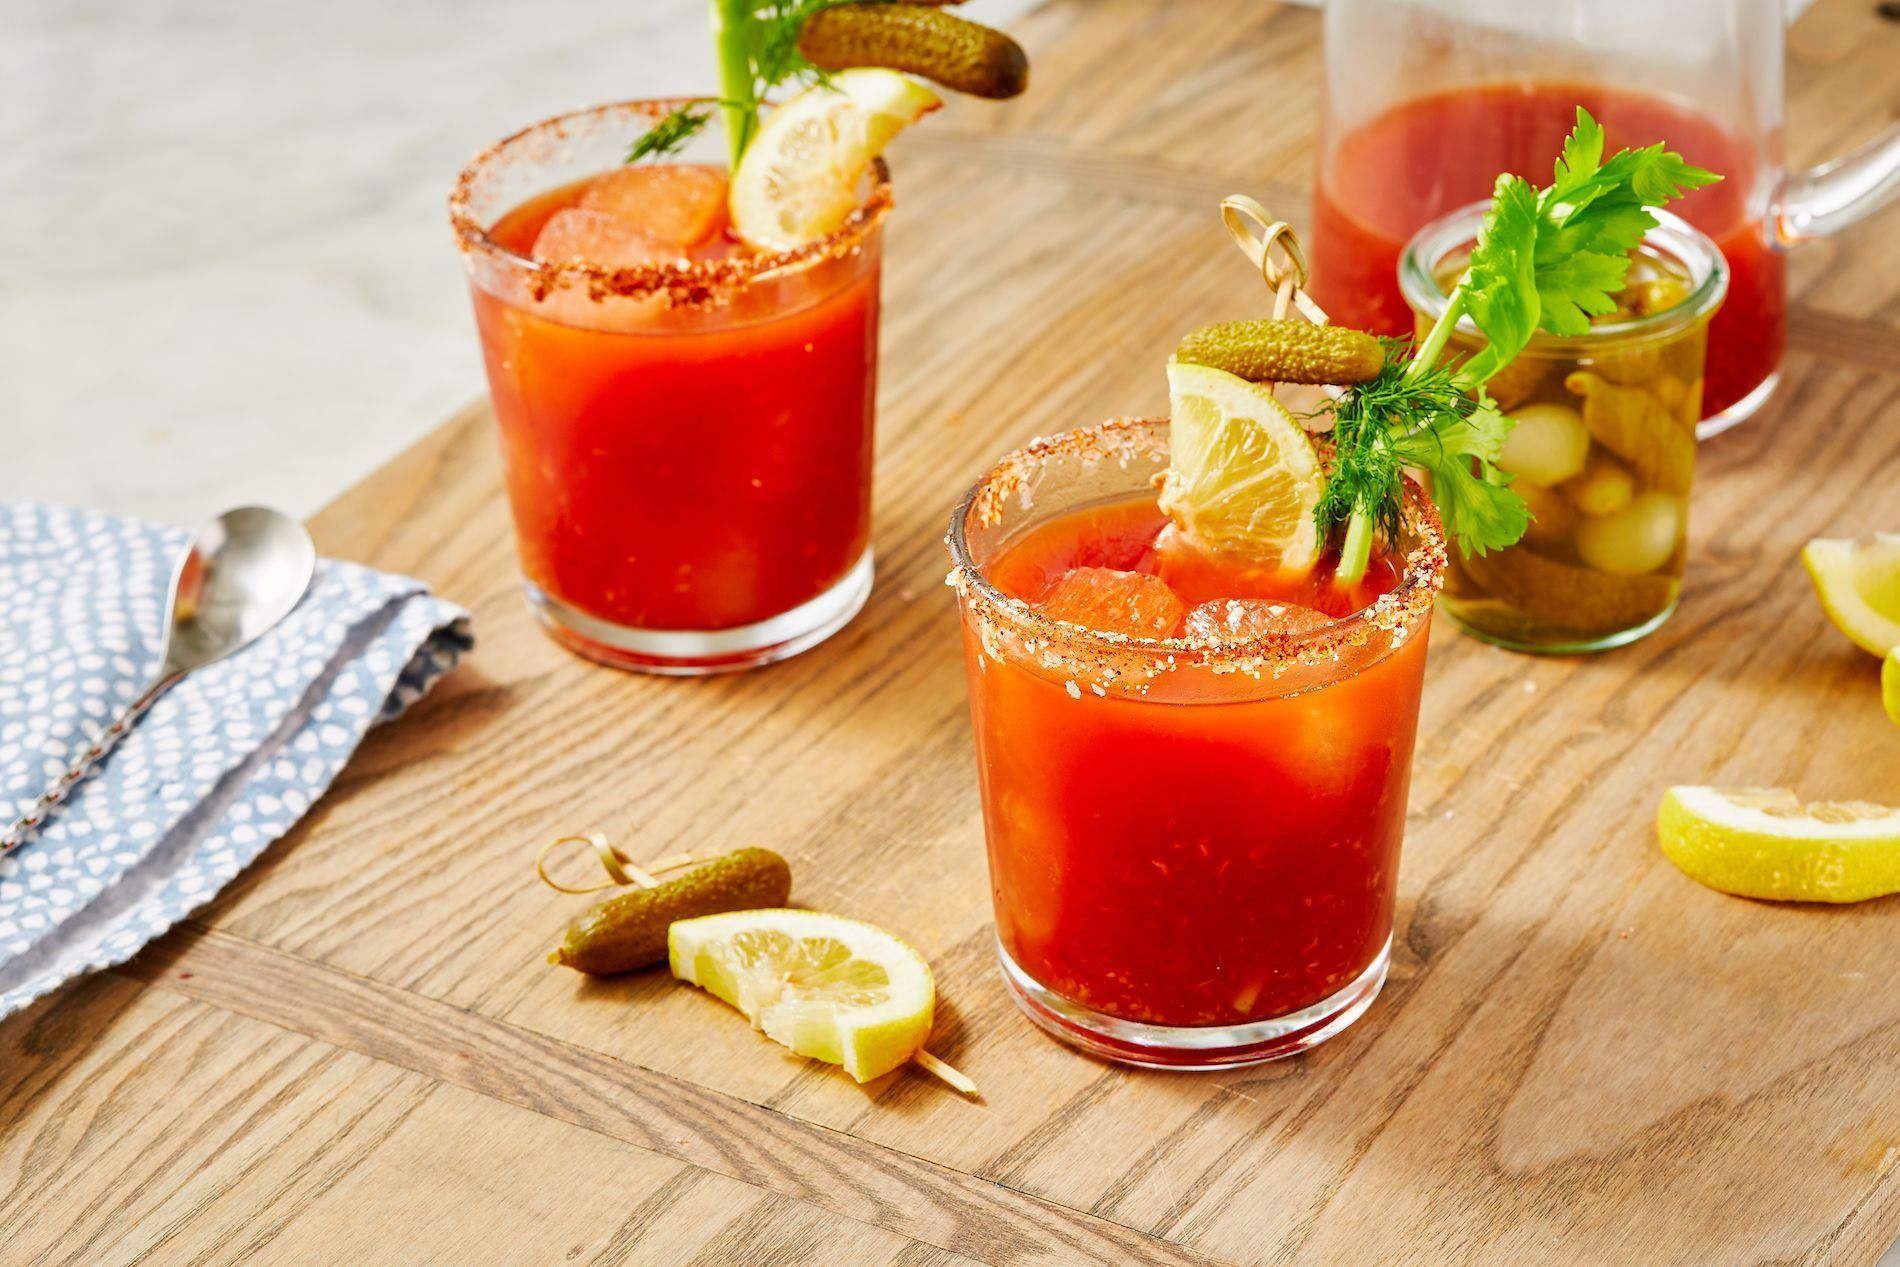 Best Dill Pickle Bloody Mary Recipe How To Make A Dill Pickle Bloody Mary